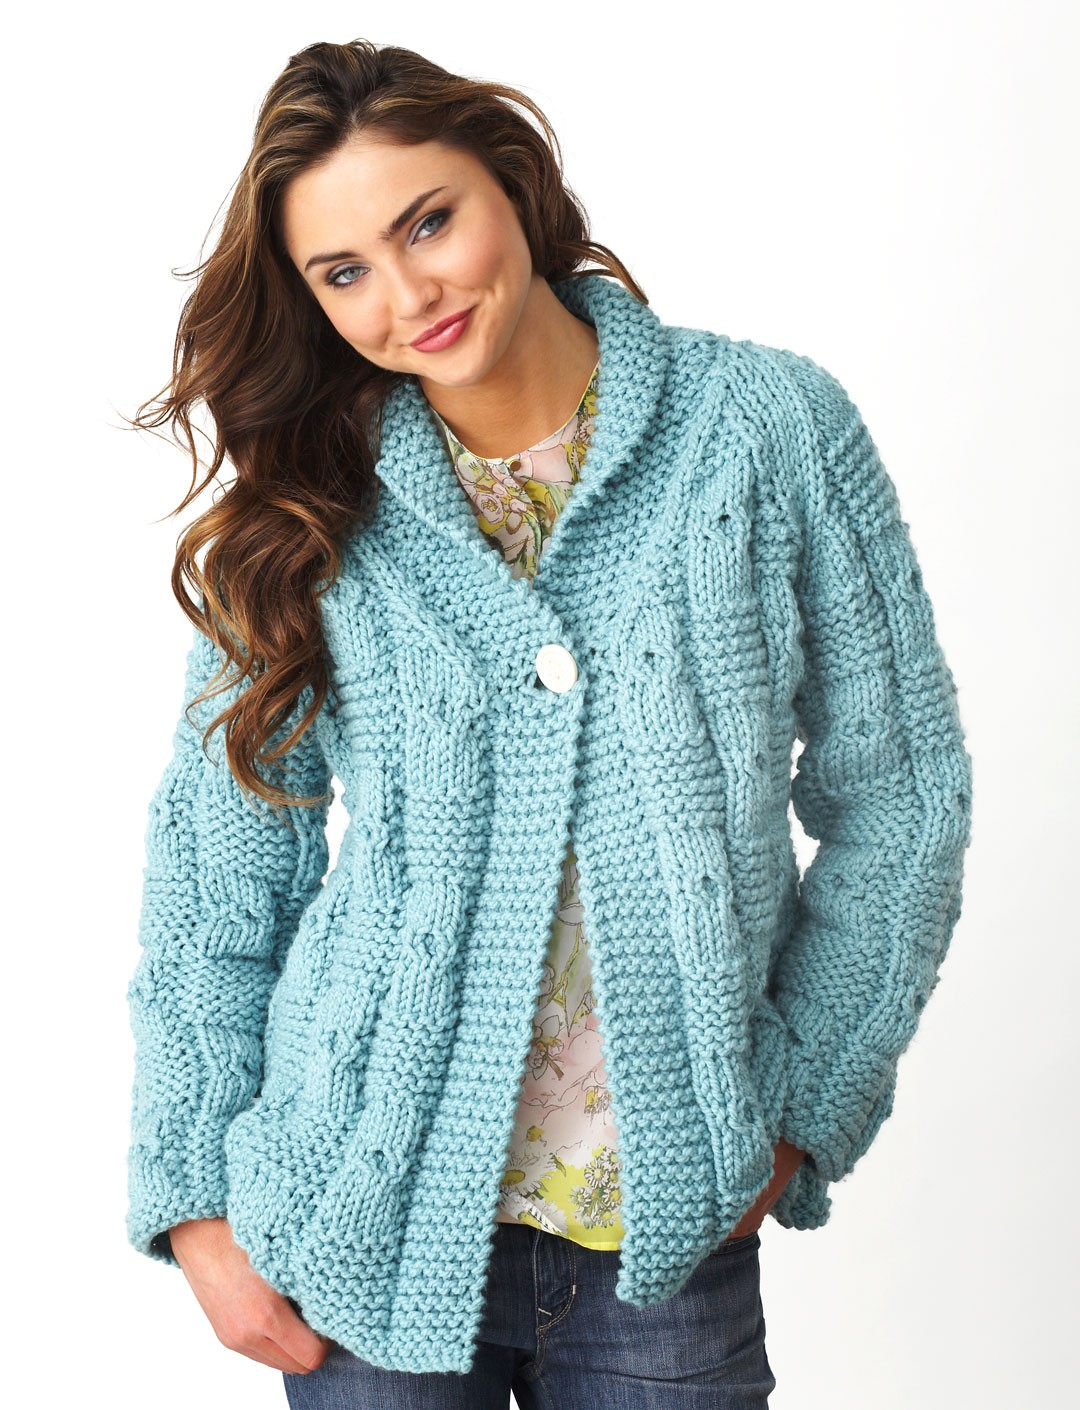 Free Knitting Patterns Chunky Jumper : Bernat Textured Checks Cardigan, Knit Pattern Yarnspirations